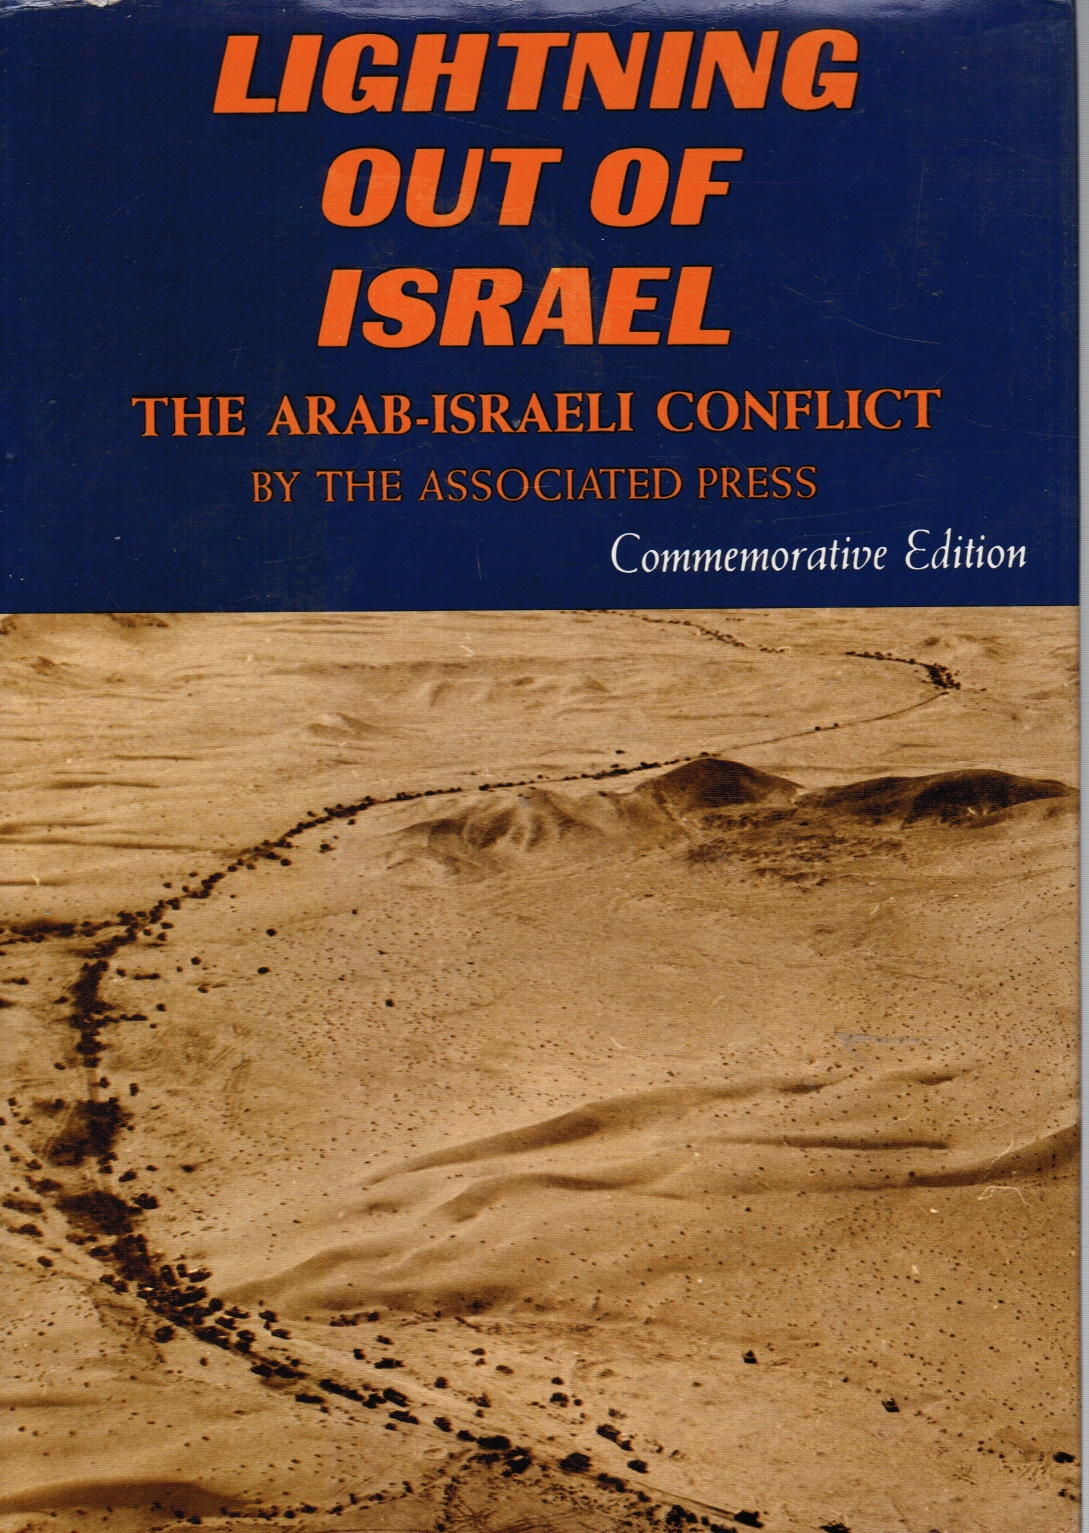 Image for Lightning out of Israel: the Arab-Israeli Conflict Commemorative Edition